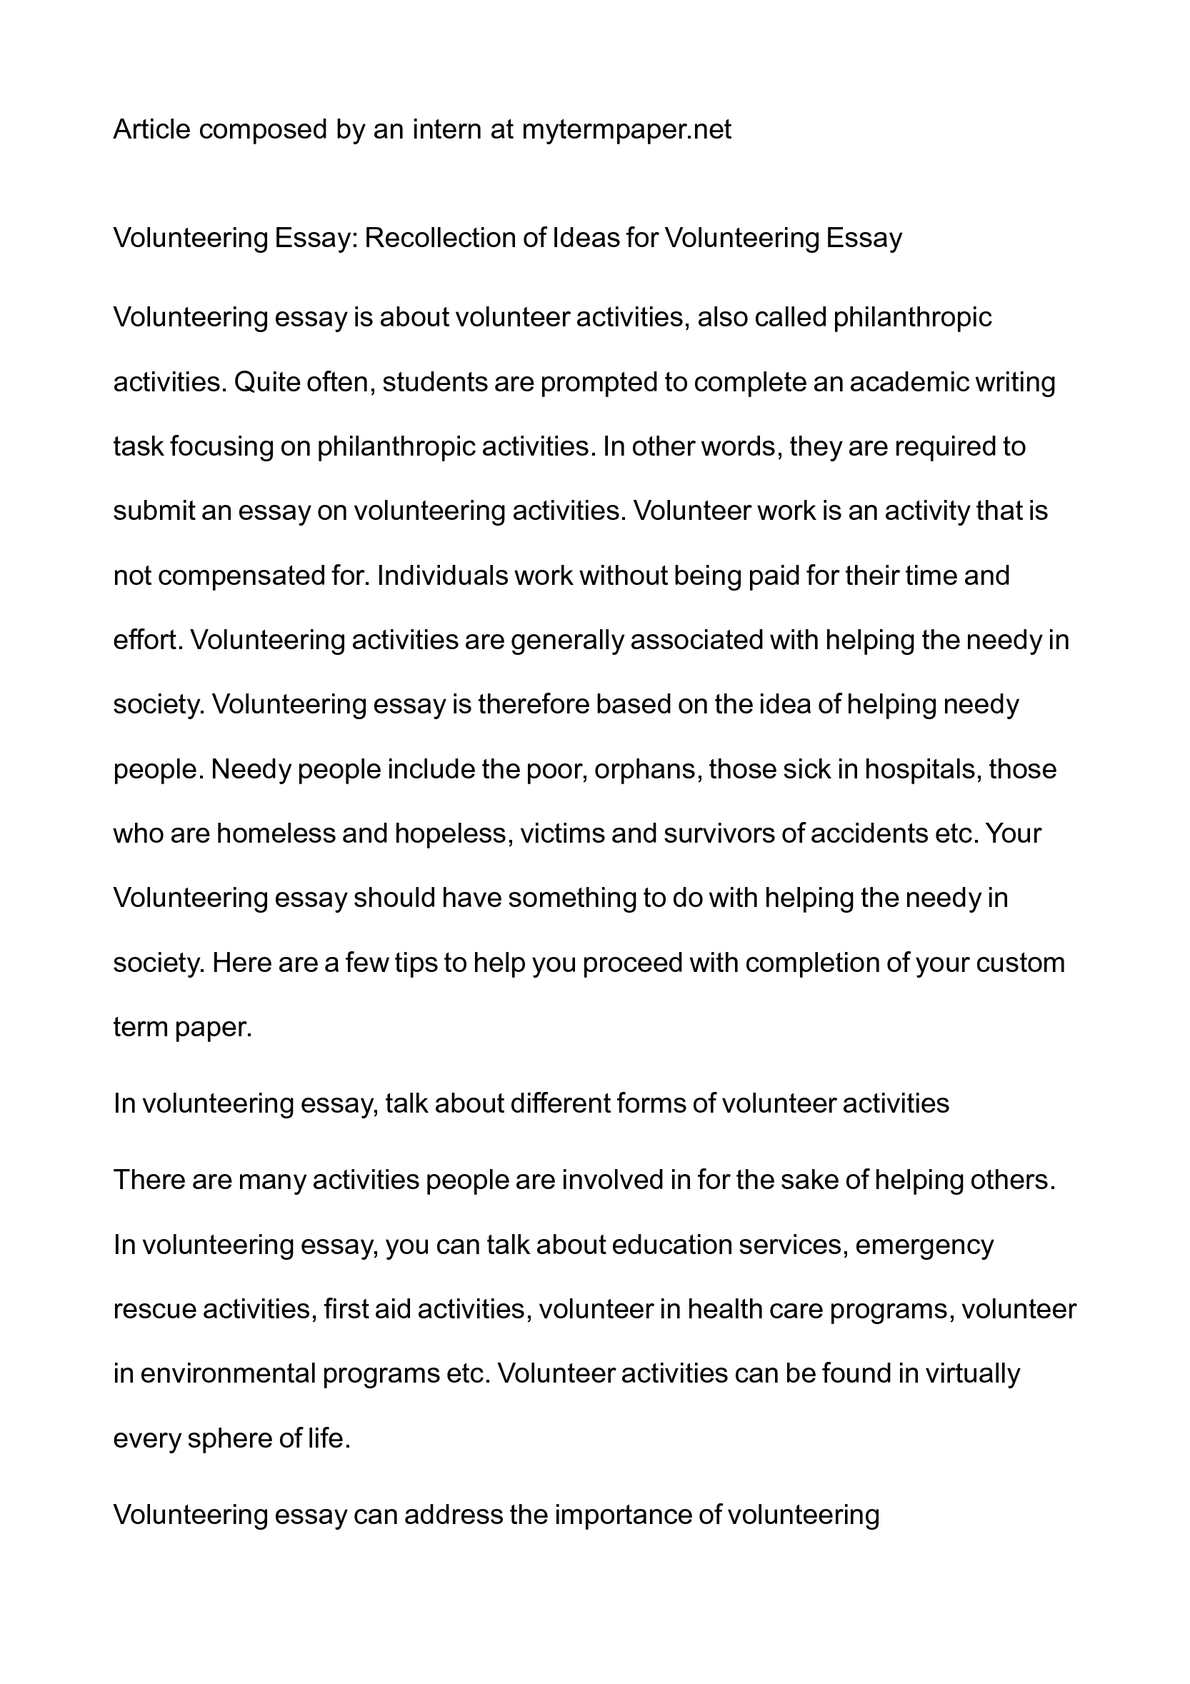 Do volunteer work essay